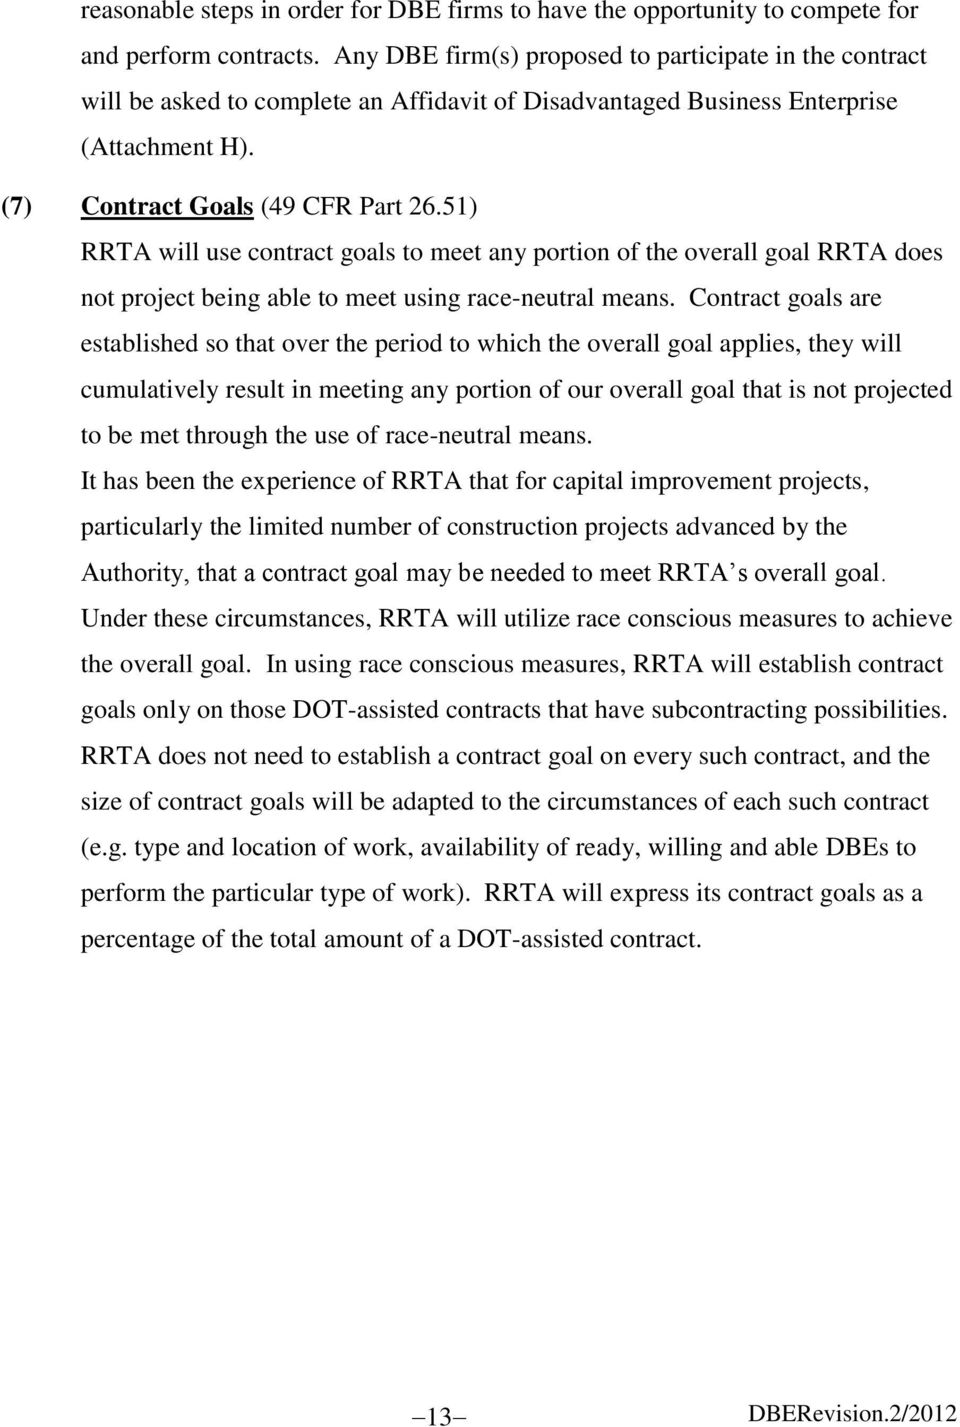 51) RRTA will use contract goals to meet any portion of the overall goal RRTA does not project being able to meet using race-neutral means.